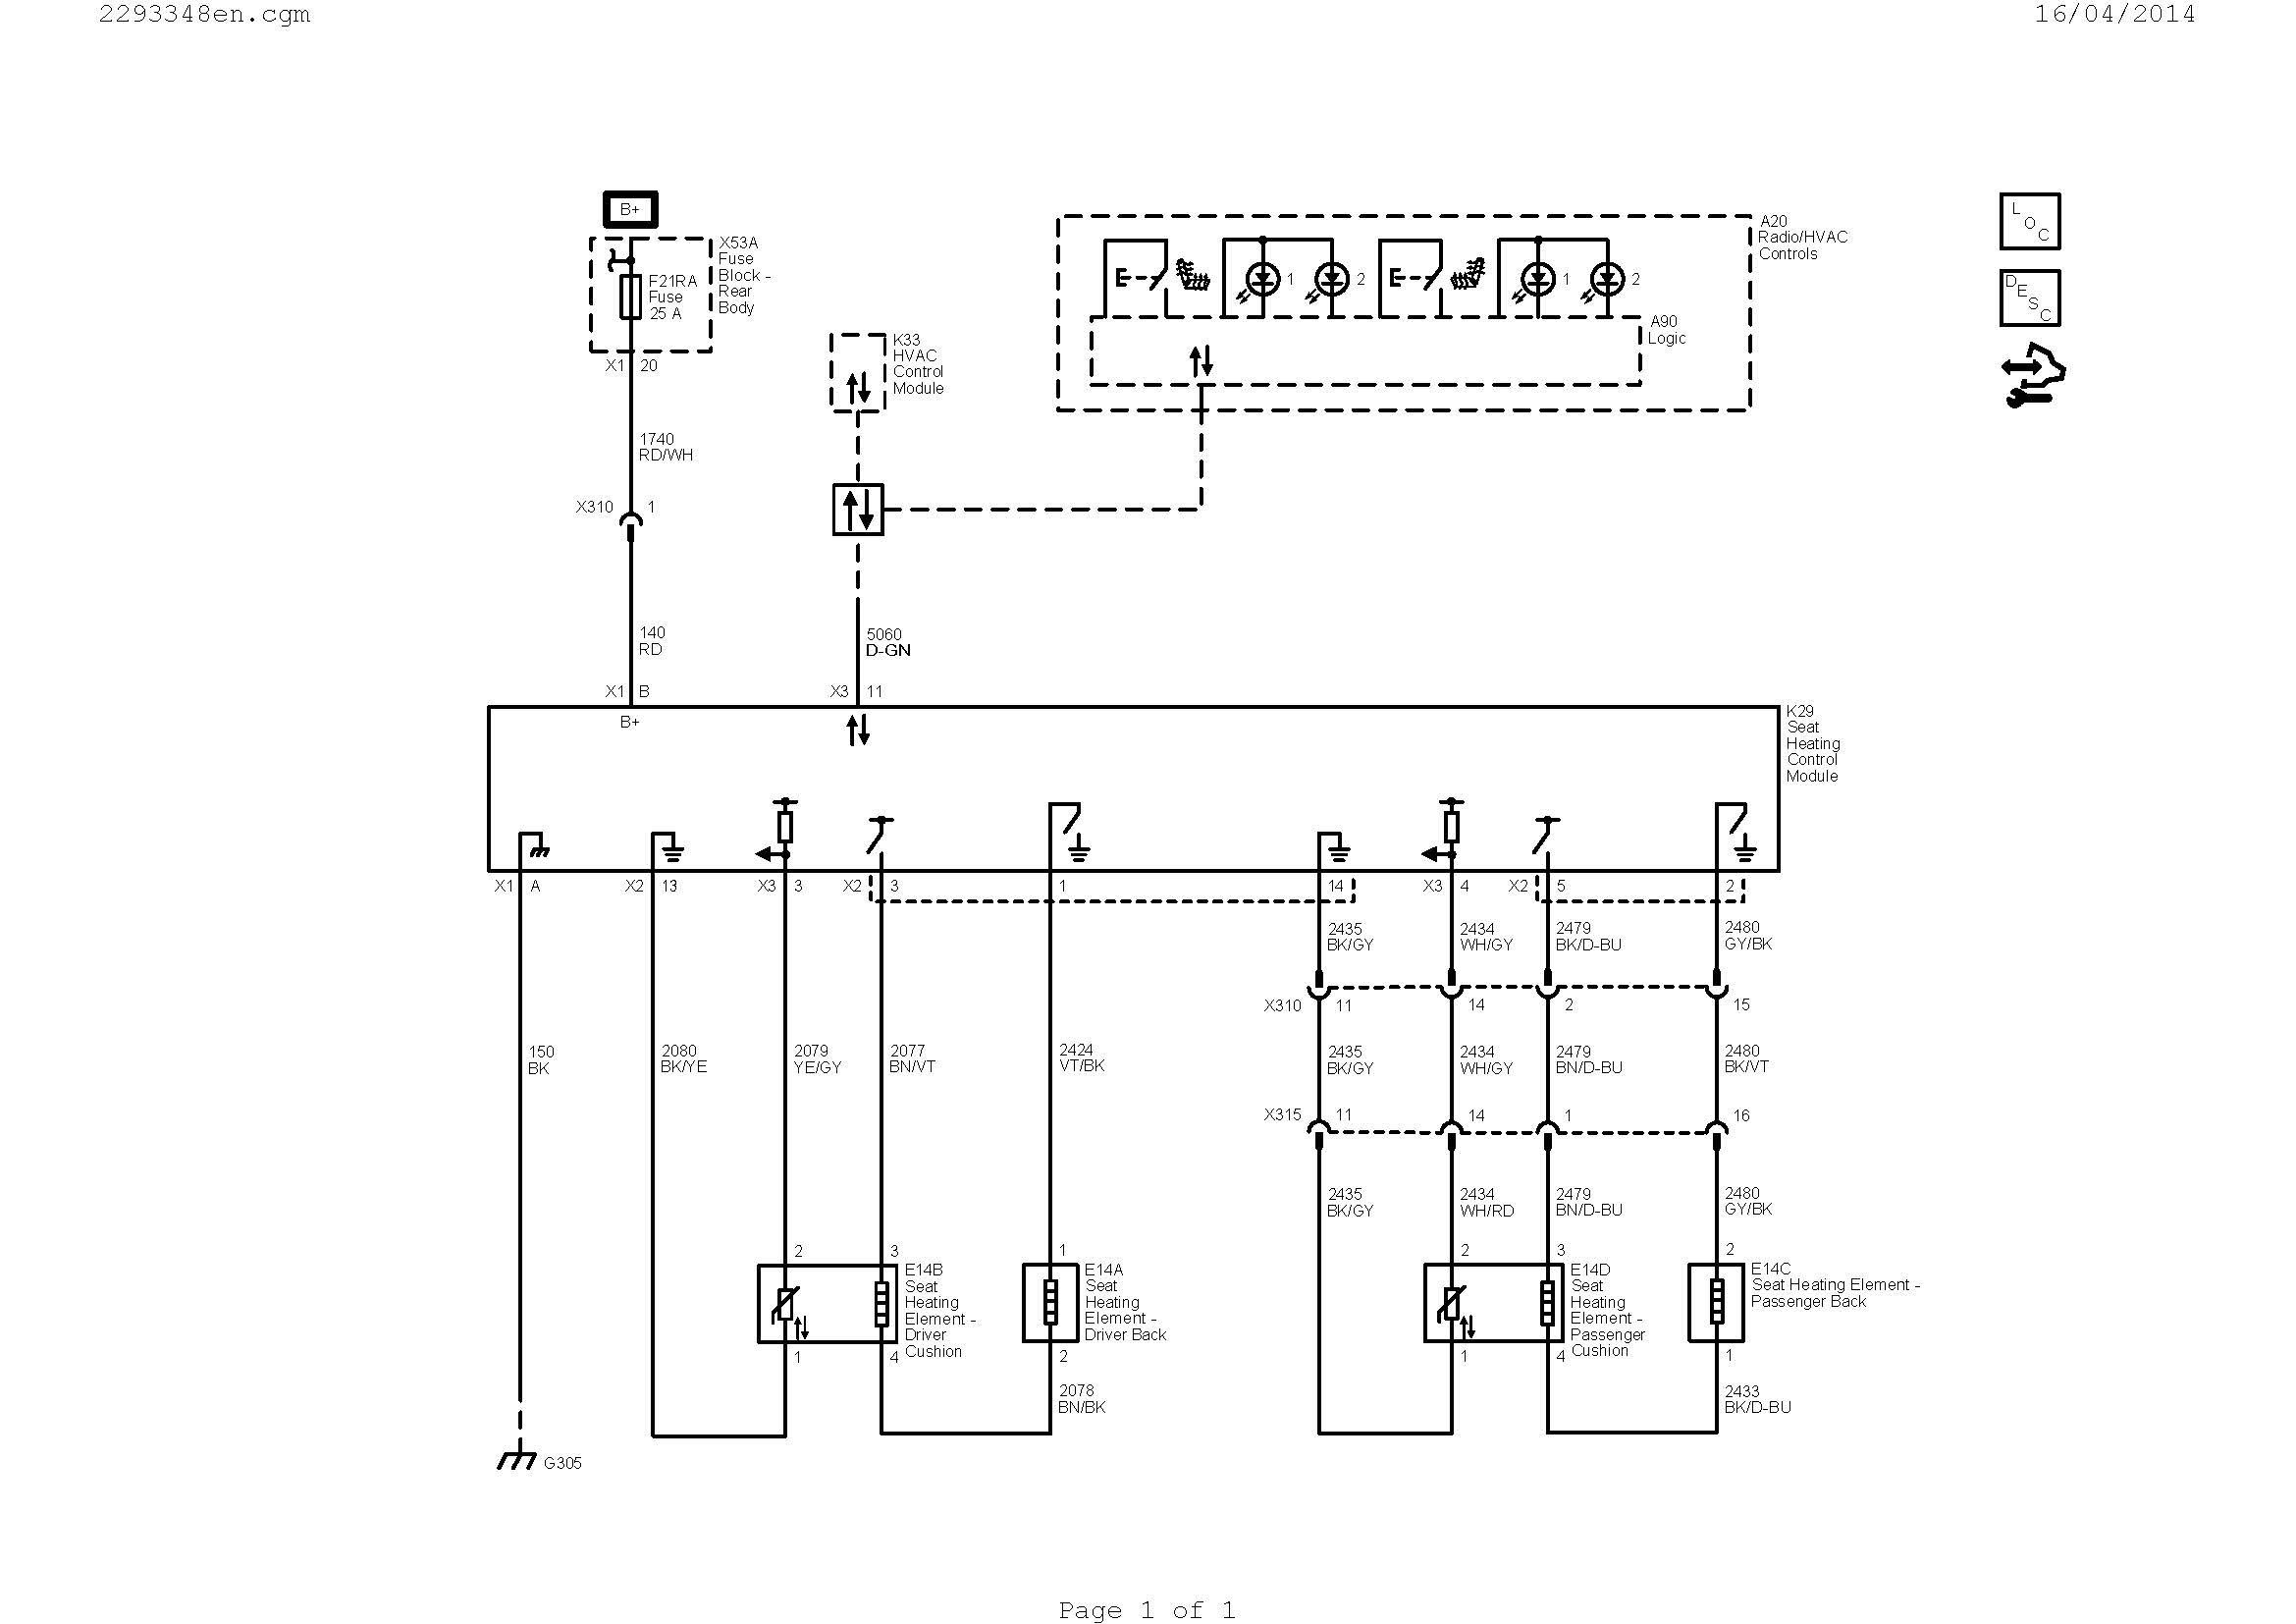 air conditioner thermostat wiring diagram Download-ac thermostat wiring diagram Collection Wiring A Ac Thermostat Diagram New Wiring Diagram Ac Valid 4-s